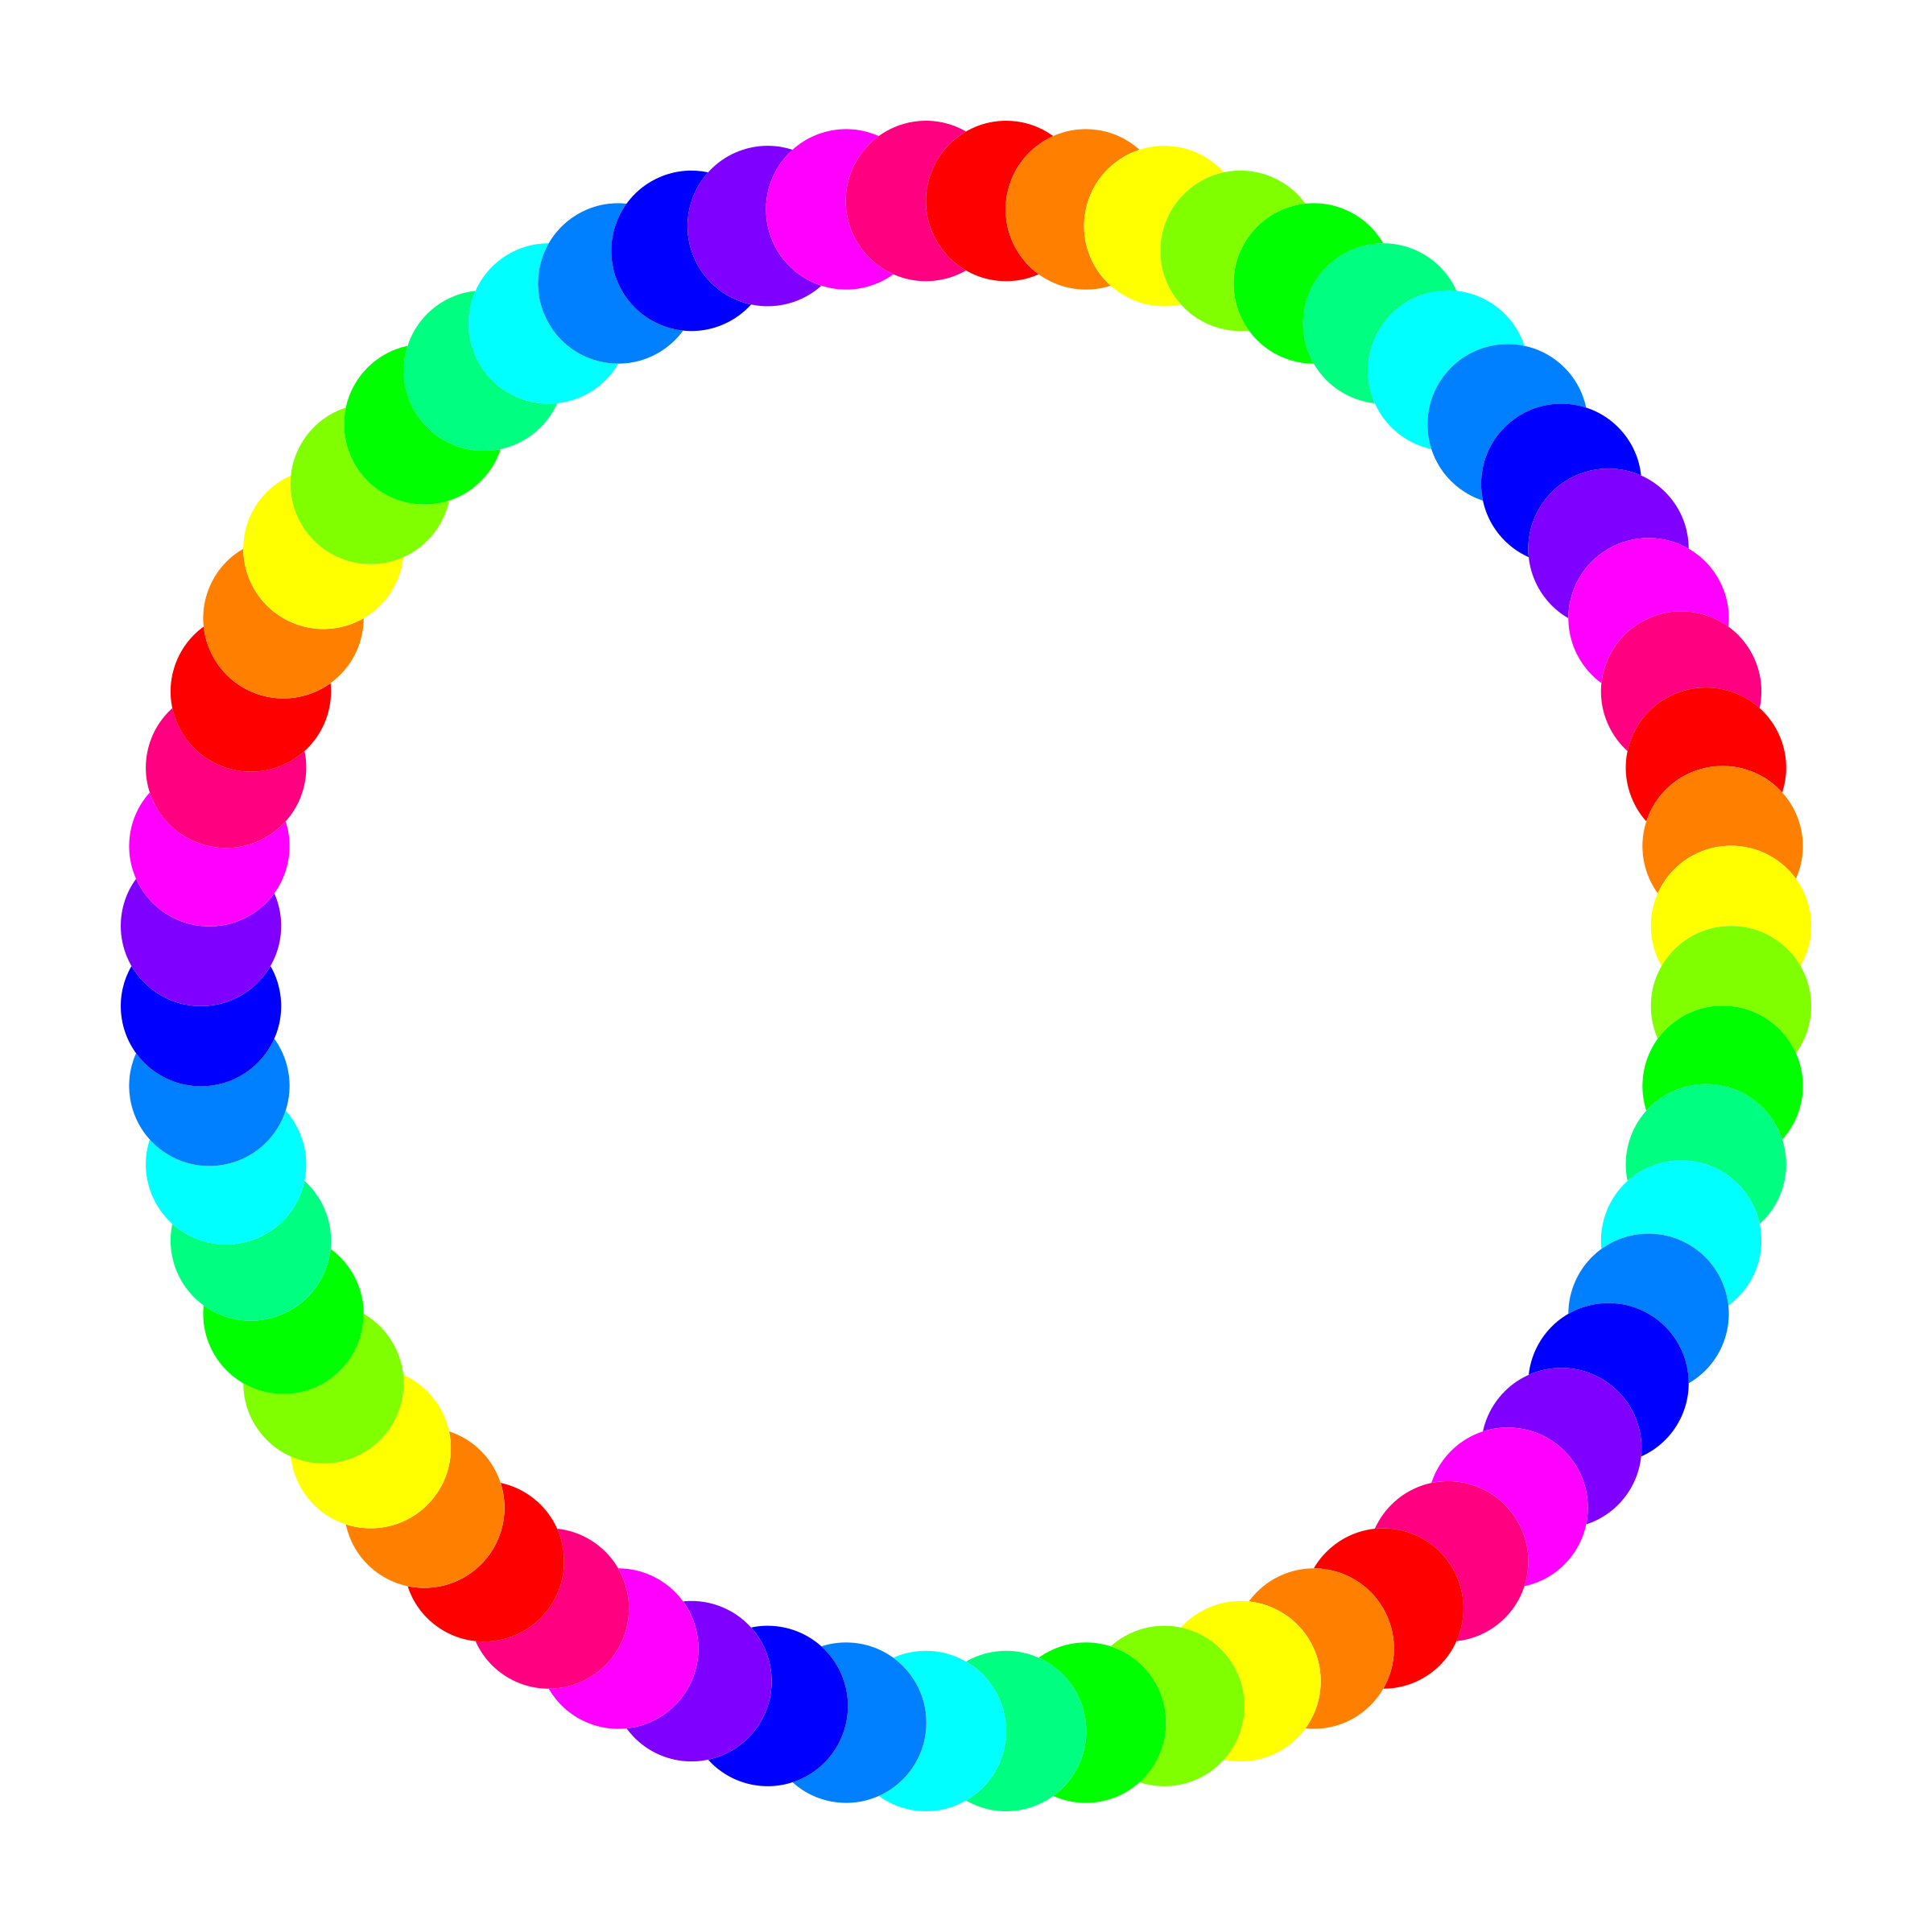 60 circle ring by 10binary